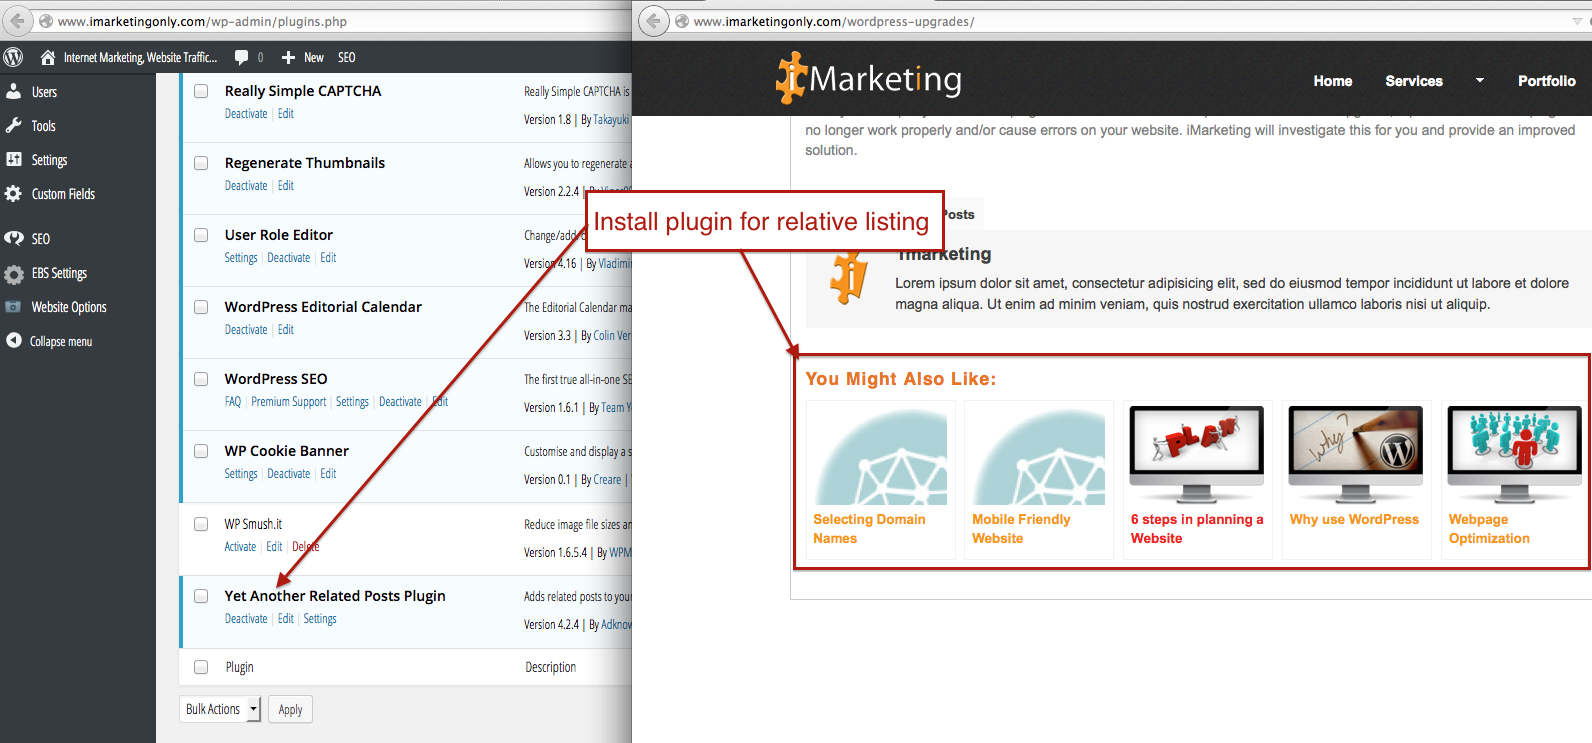 Yet Another Related Posts Plugin (YARPP) | WordPress Plugins